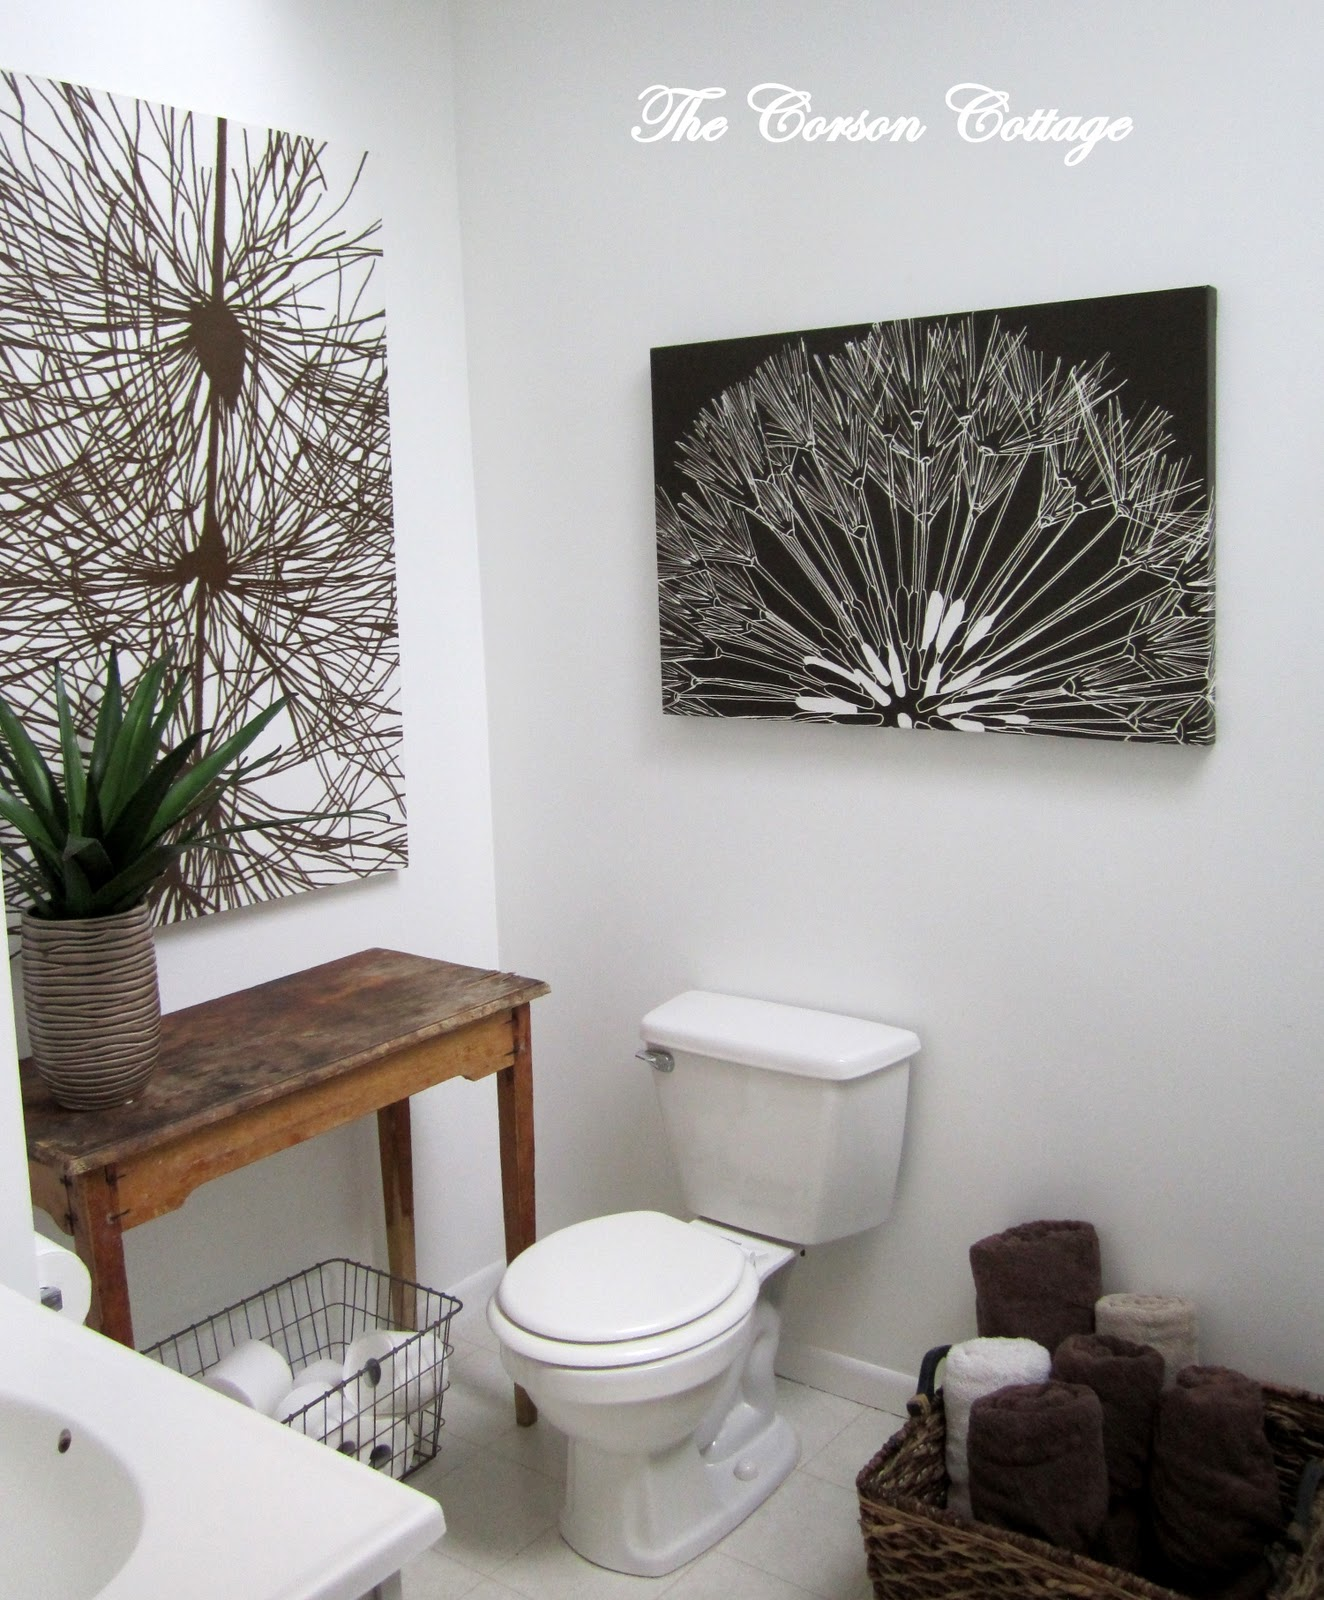 Modern cottage bathroom - Submitted By The Corson Cottage